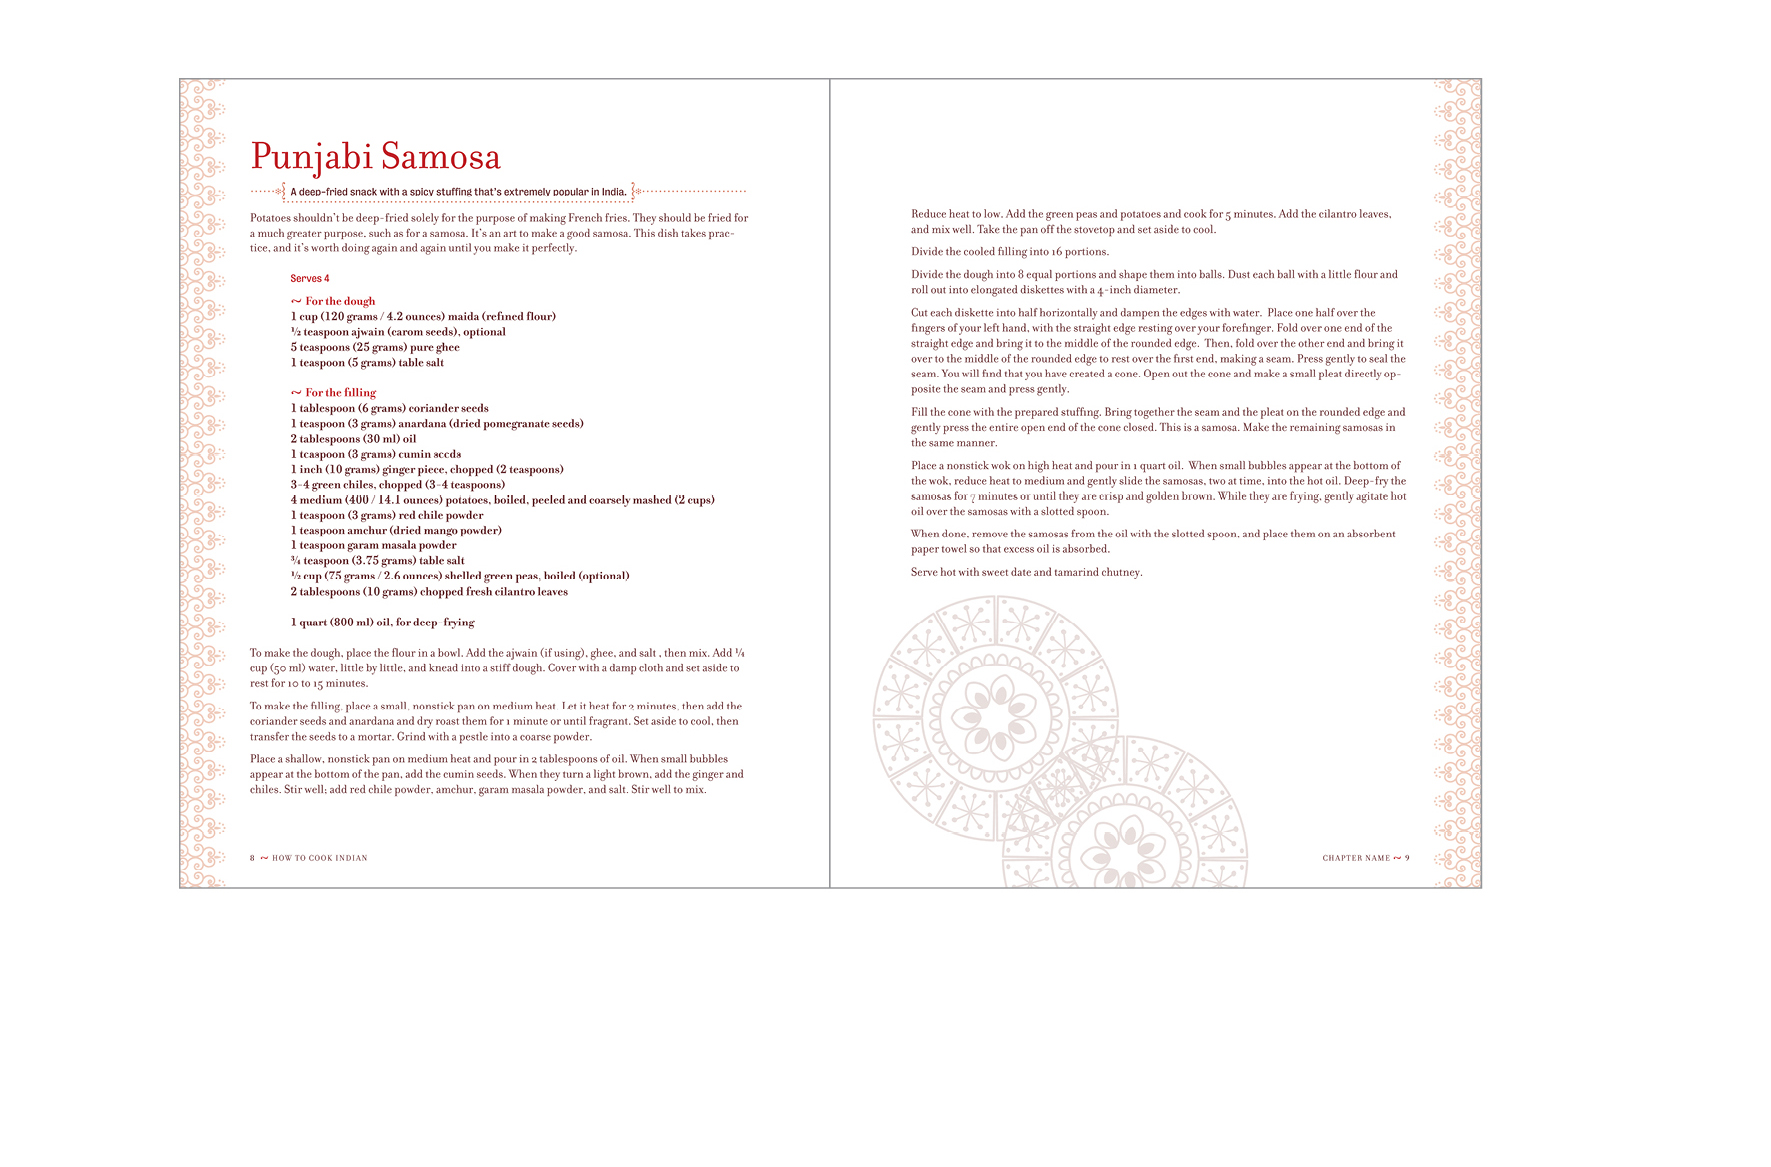 Typical spread -  Two-page recipe with tinted border and ornaments